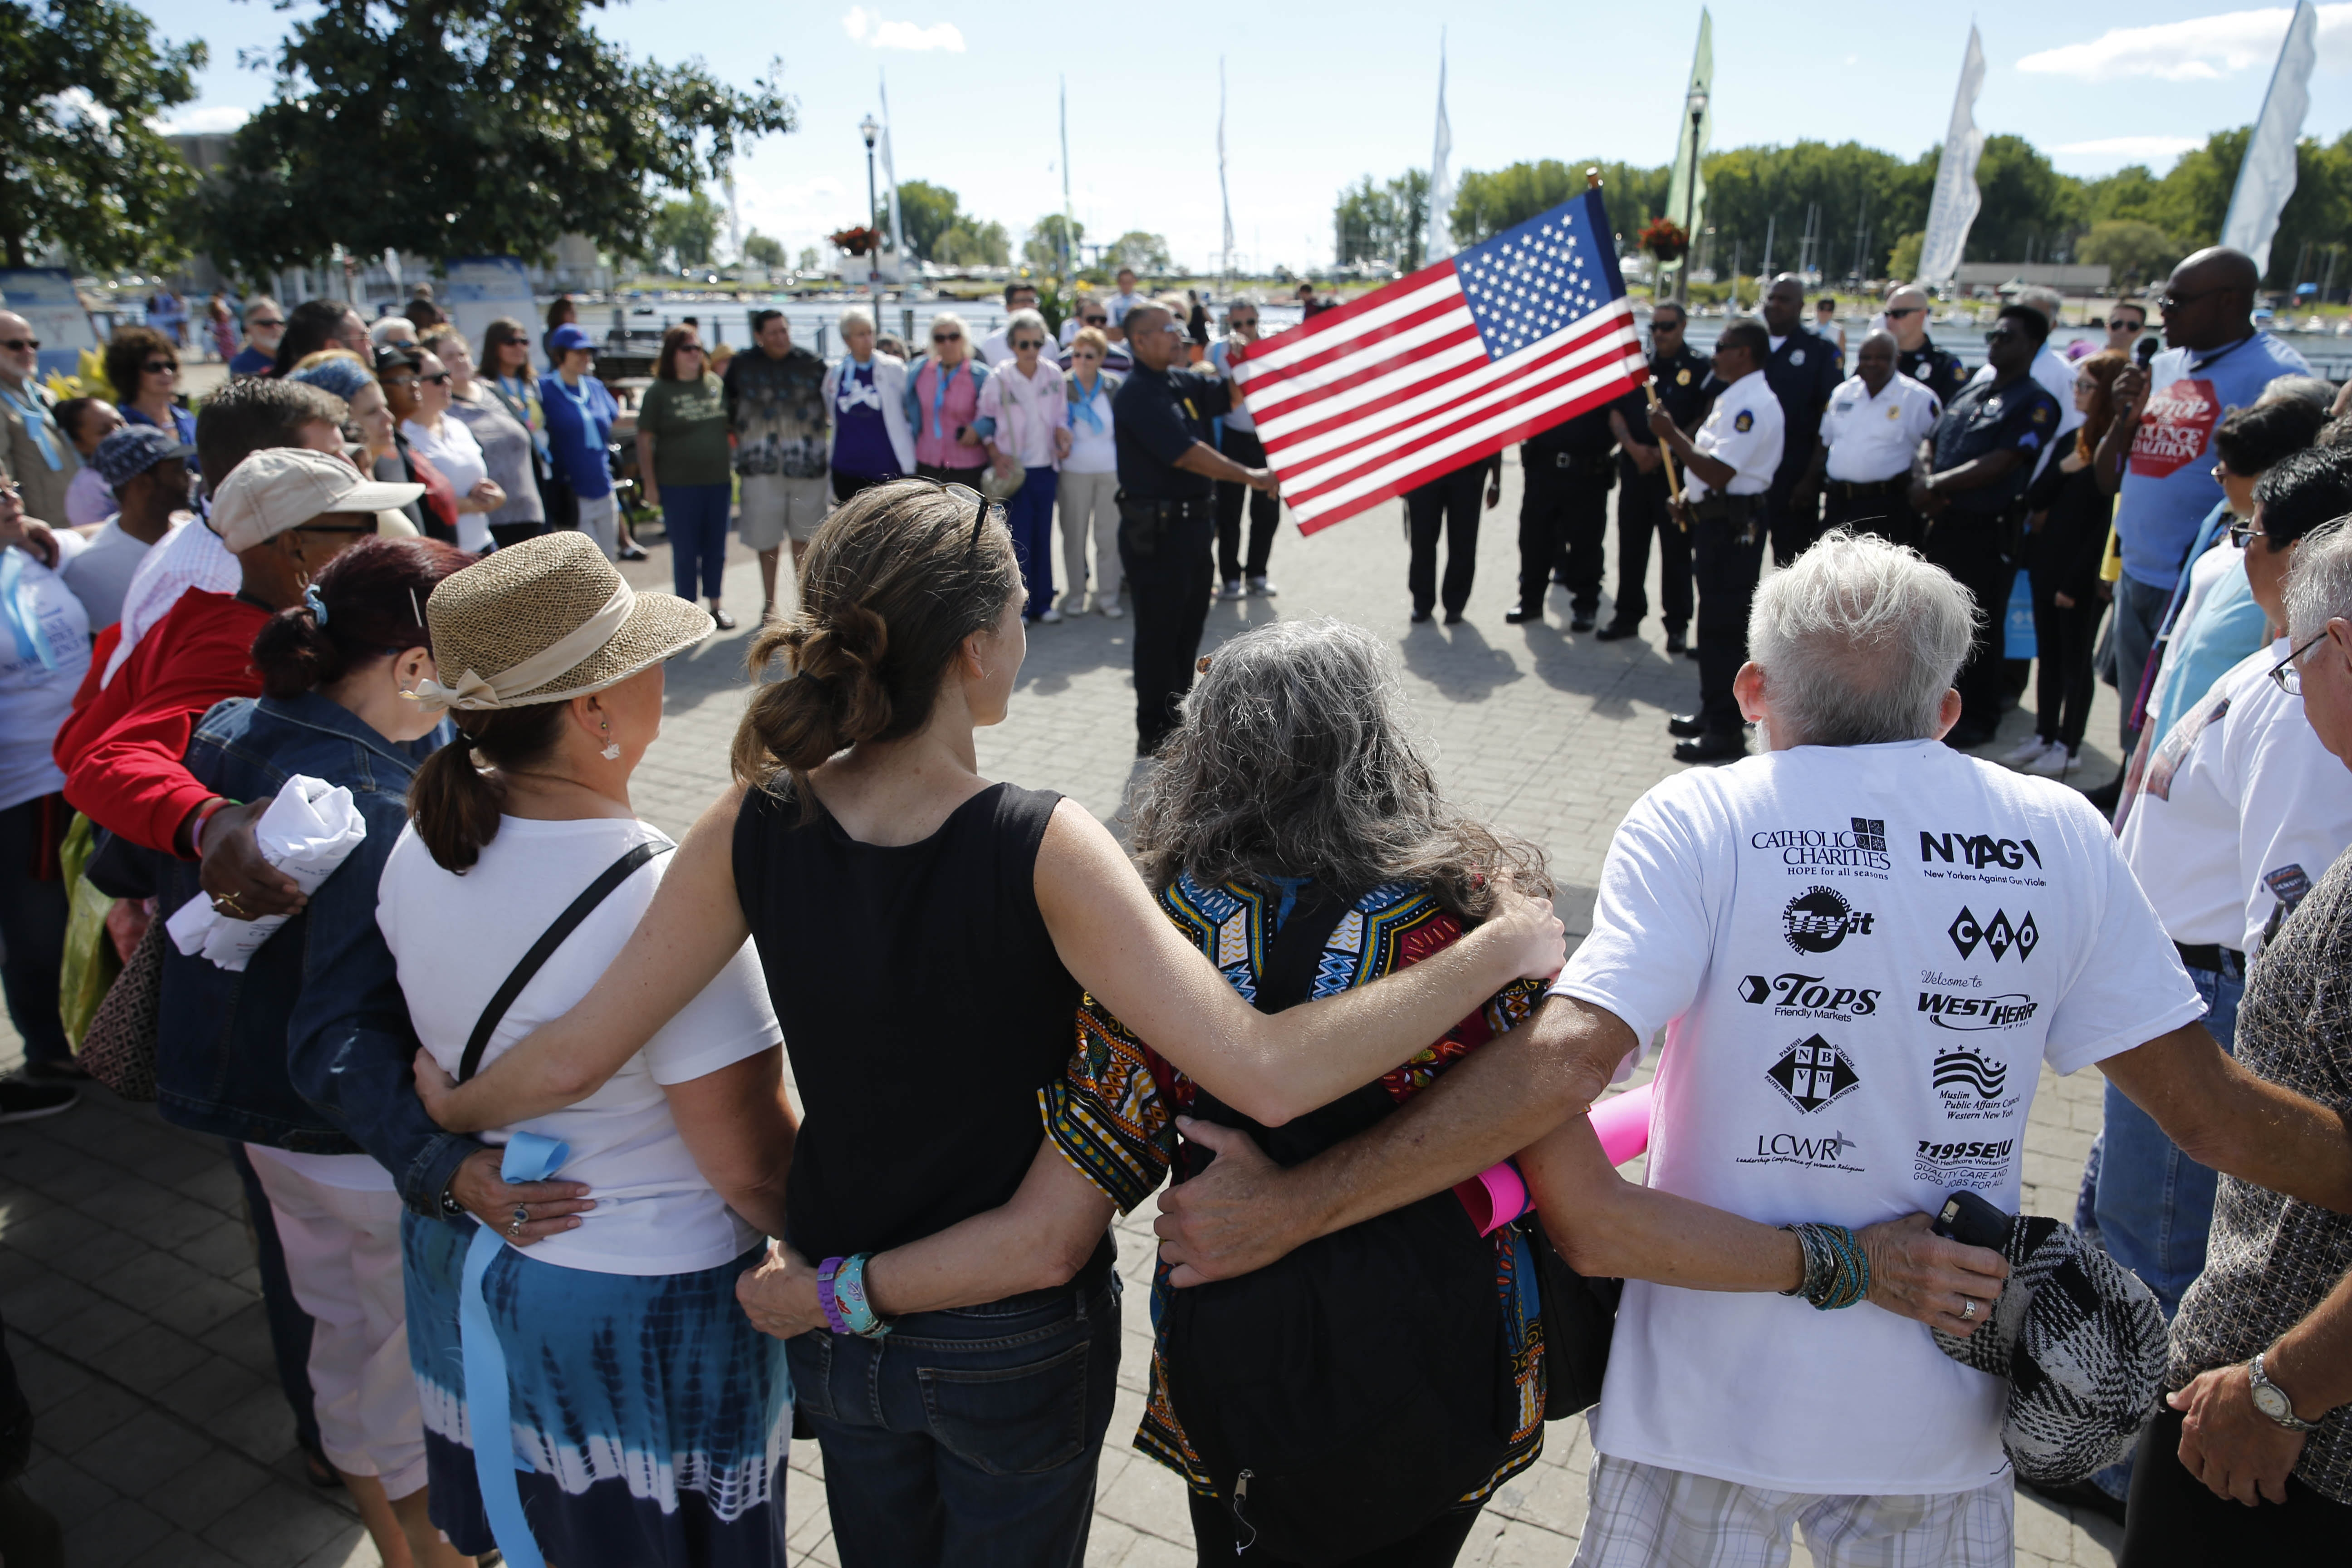 Dozens of attendees join arms for a group hug during the Peace Justice Nonviolence Festival & Walk at Canalside on Sunday.